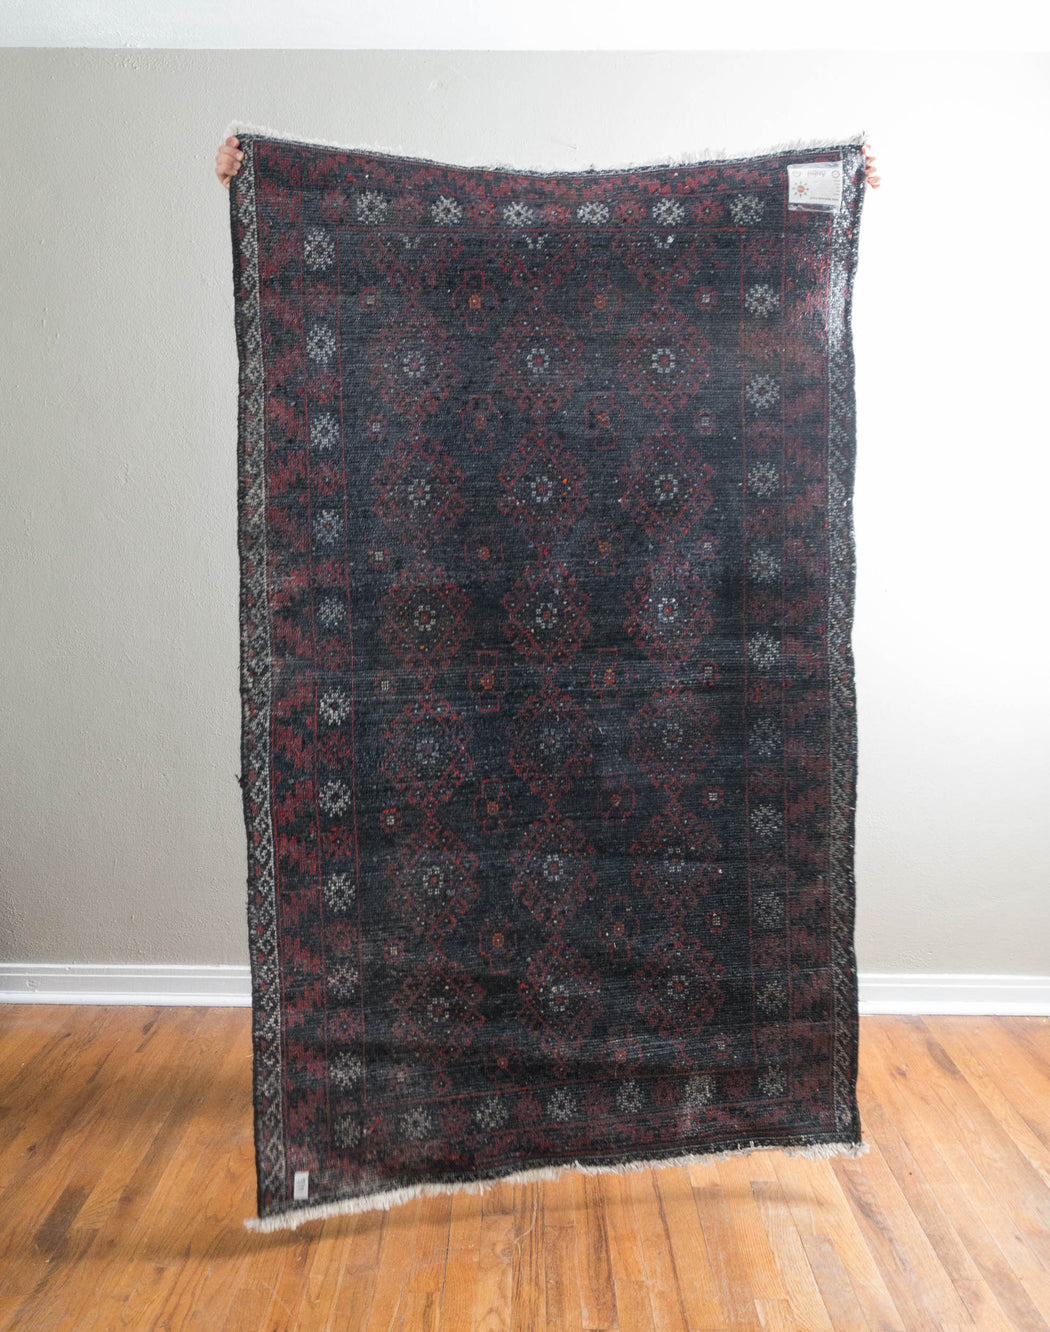 4x6 Vintage Persian Carpet